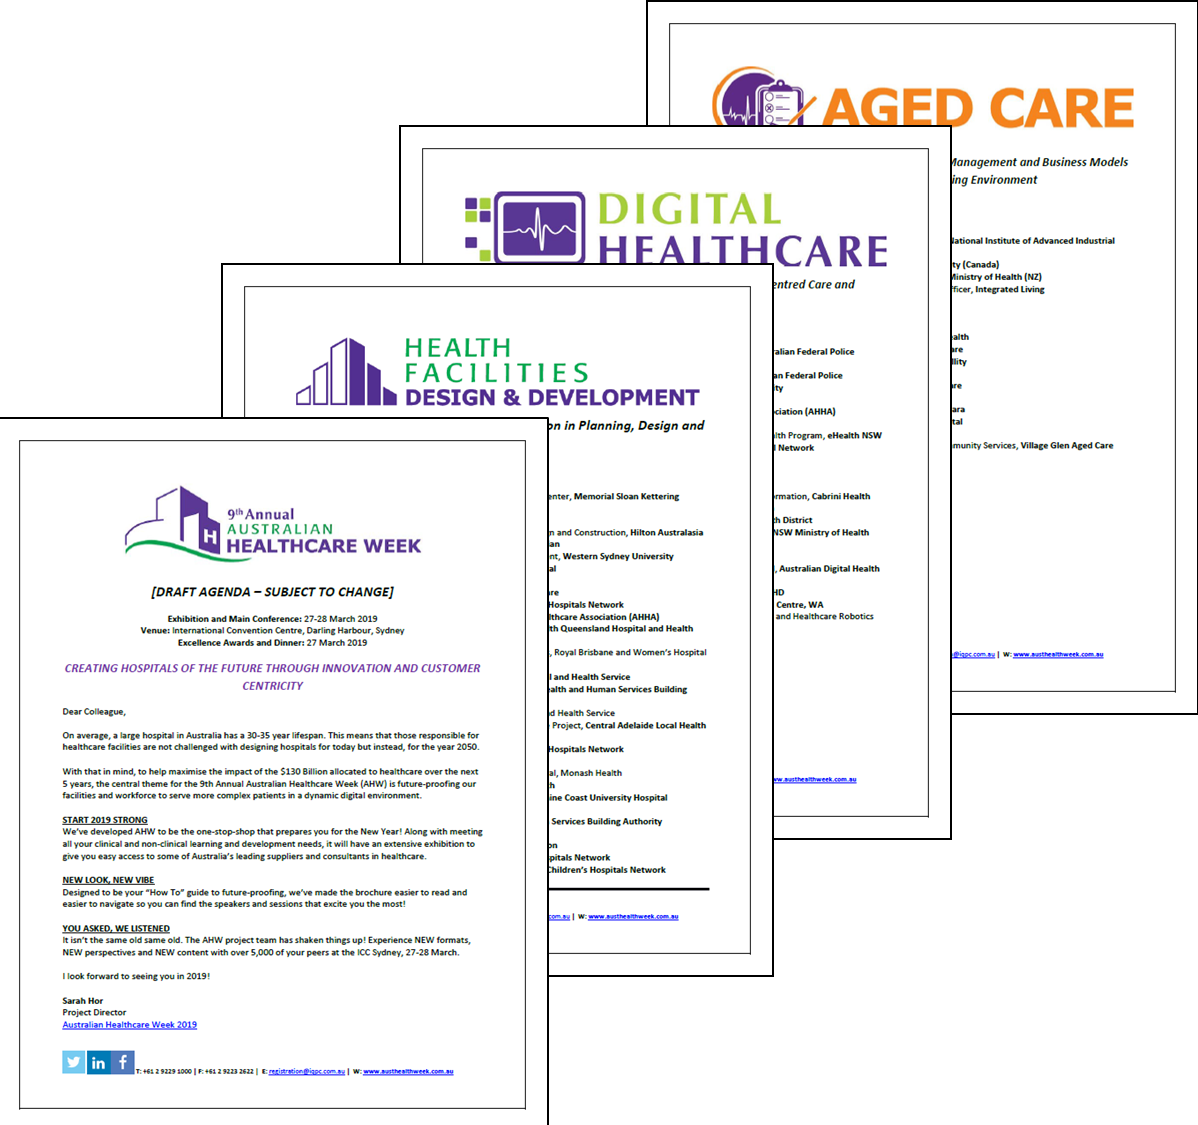 View the Draft Agenda - The 9th Annual Australian Healthcare Week 2019